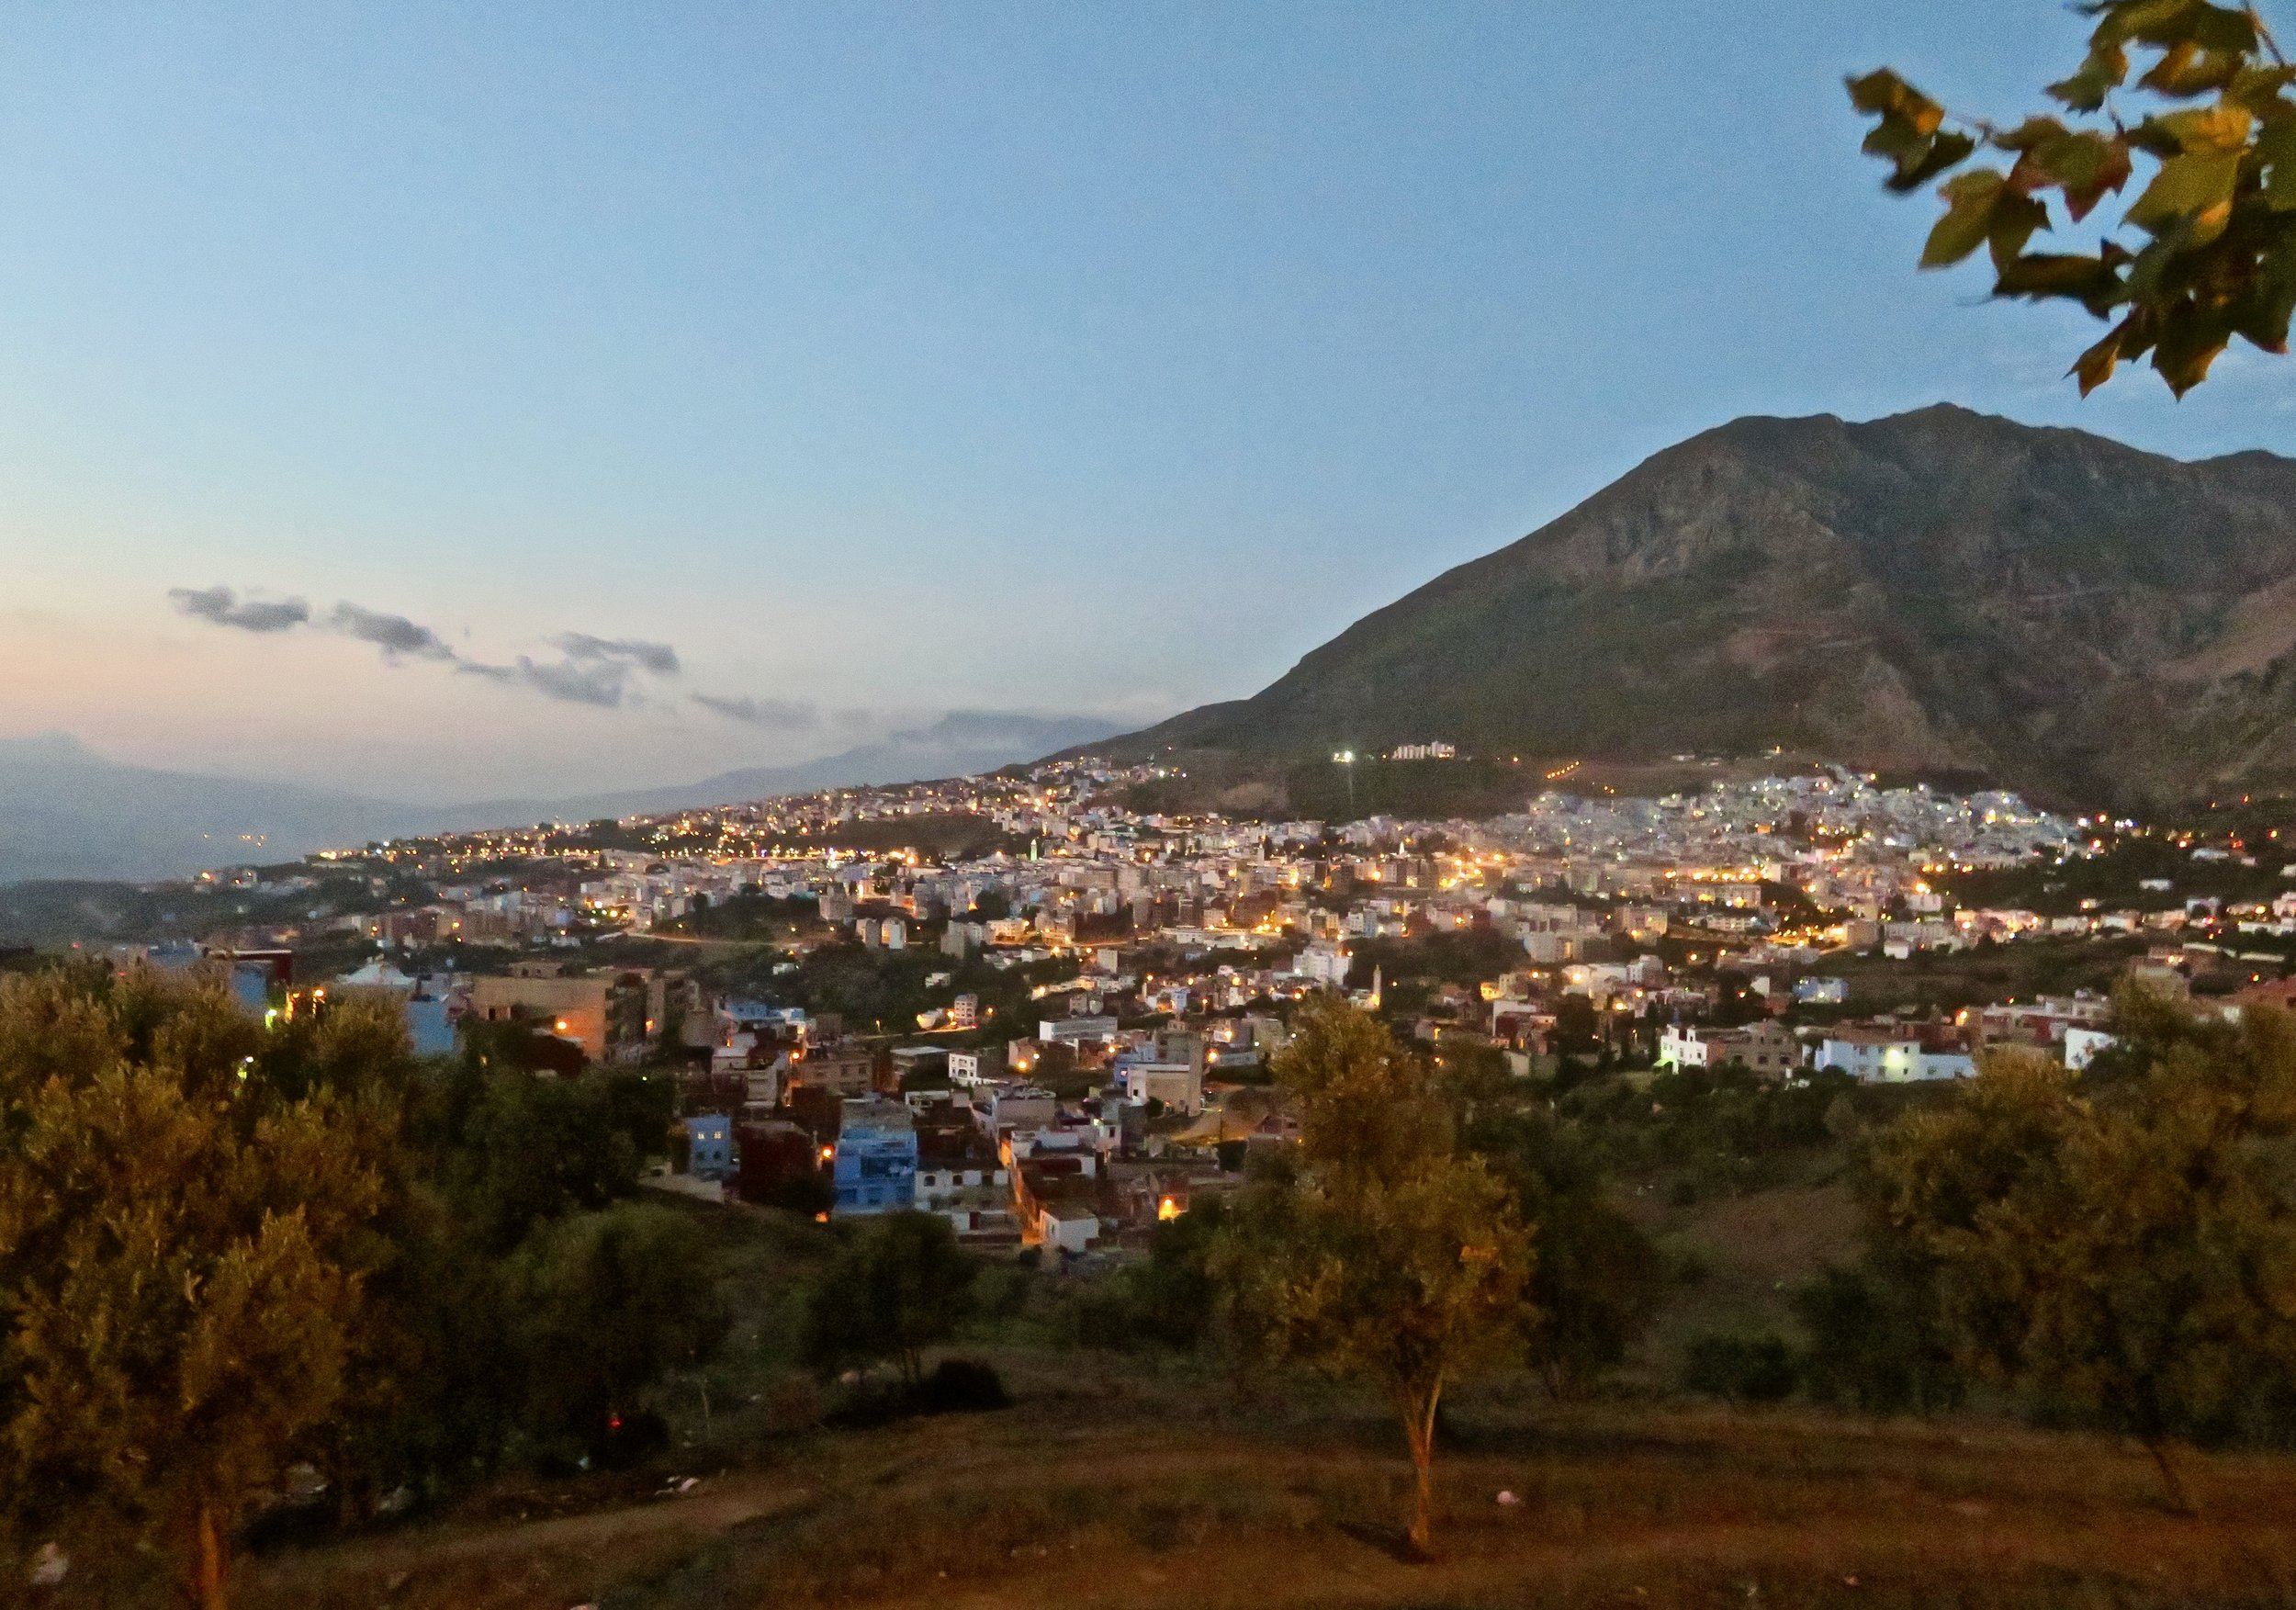 Chefchaouen at sunset, simply stunning!